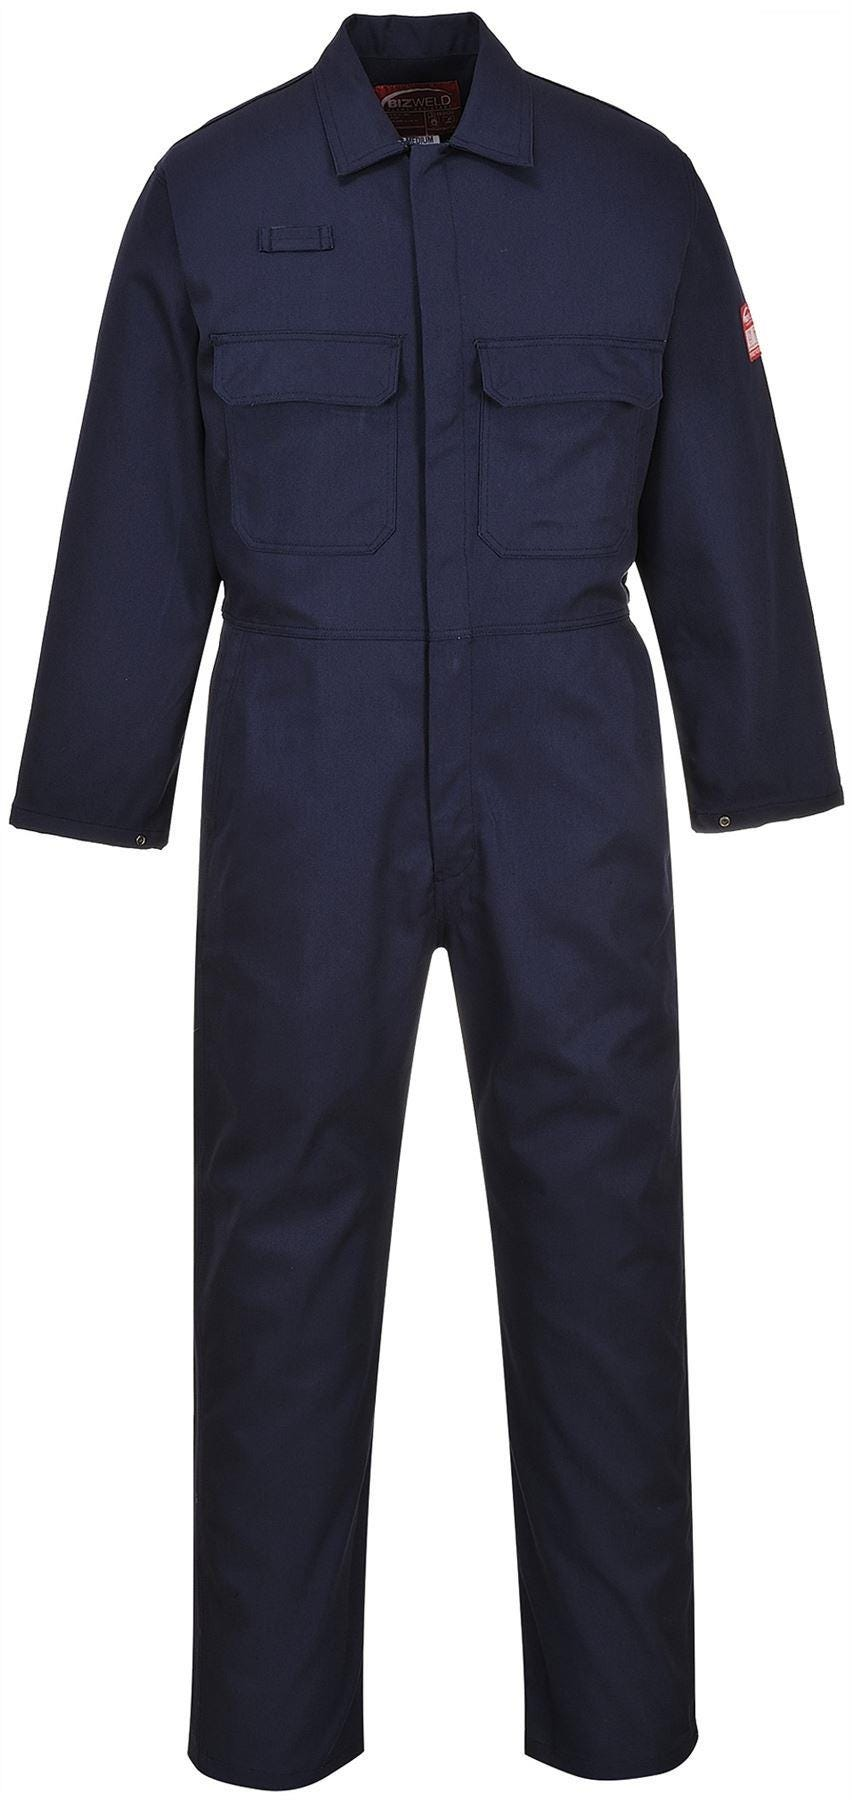 Portwest Bizweld Flame Resistant Coverall - Navy 6XL